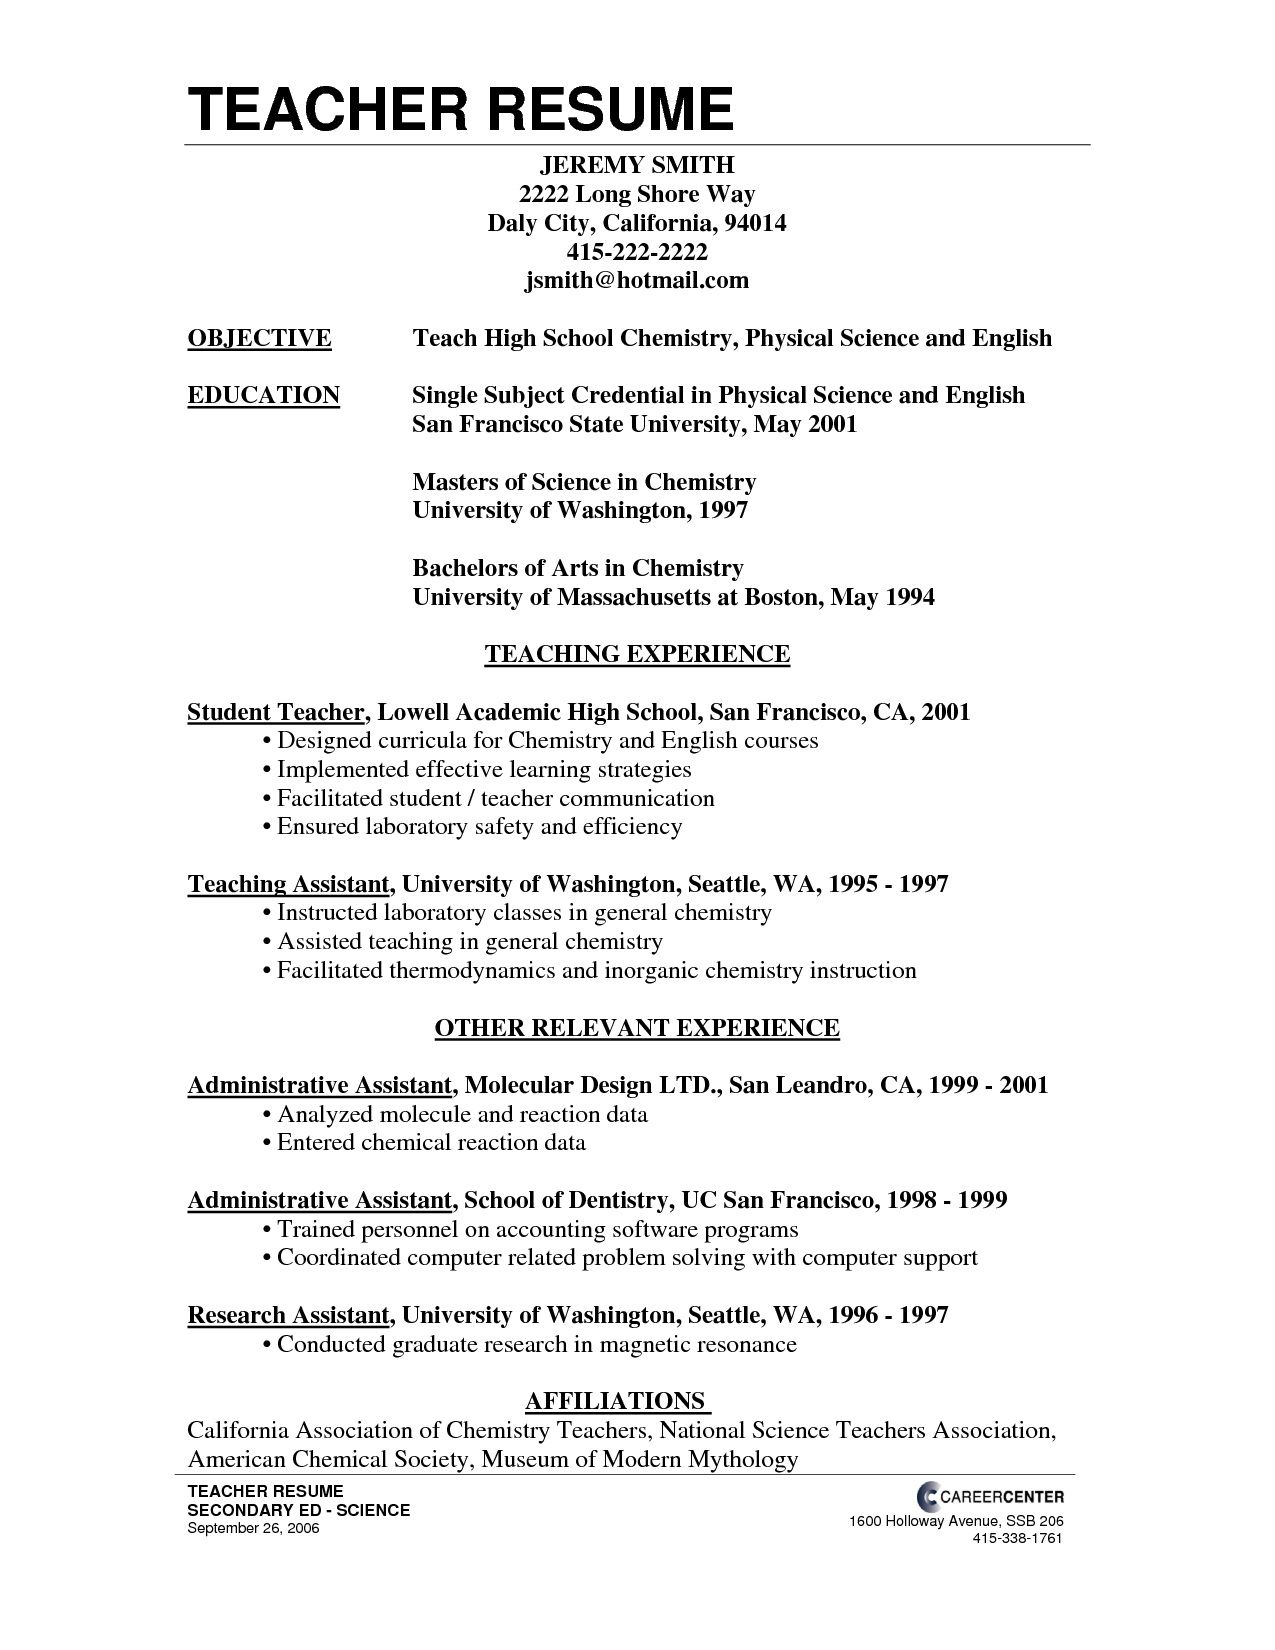 How To Write A Resume Objective For A Teaching Position High School Teacher Resume Http Jobresumesample